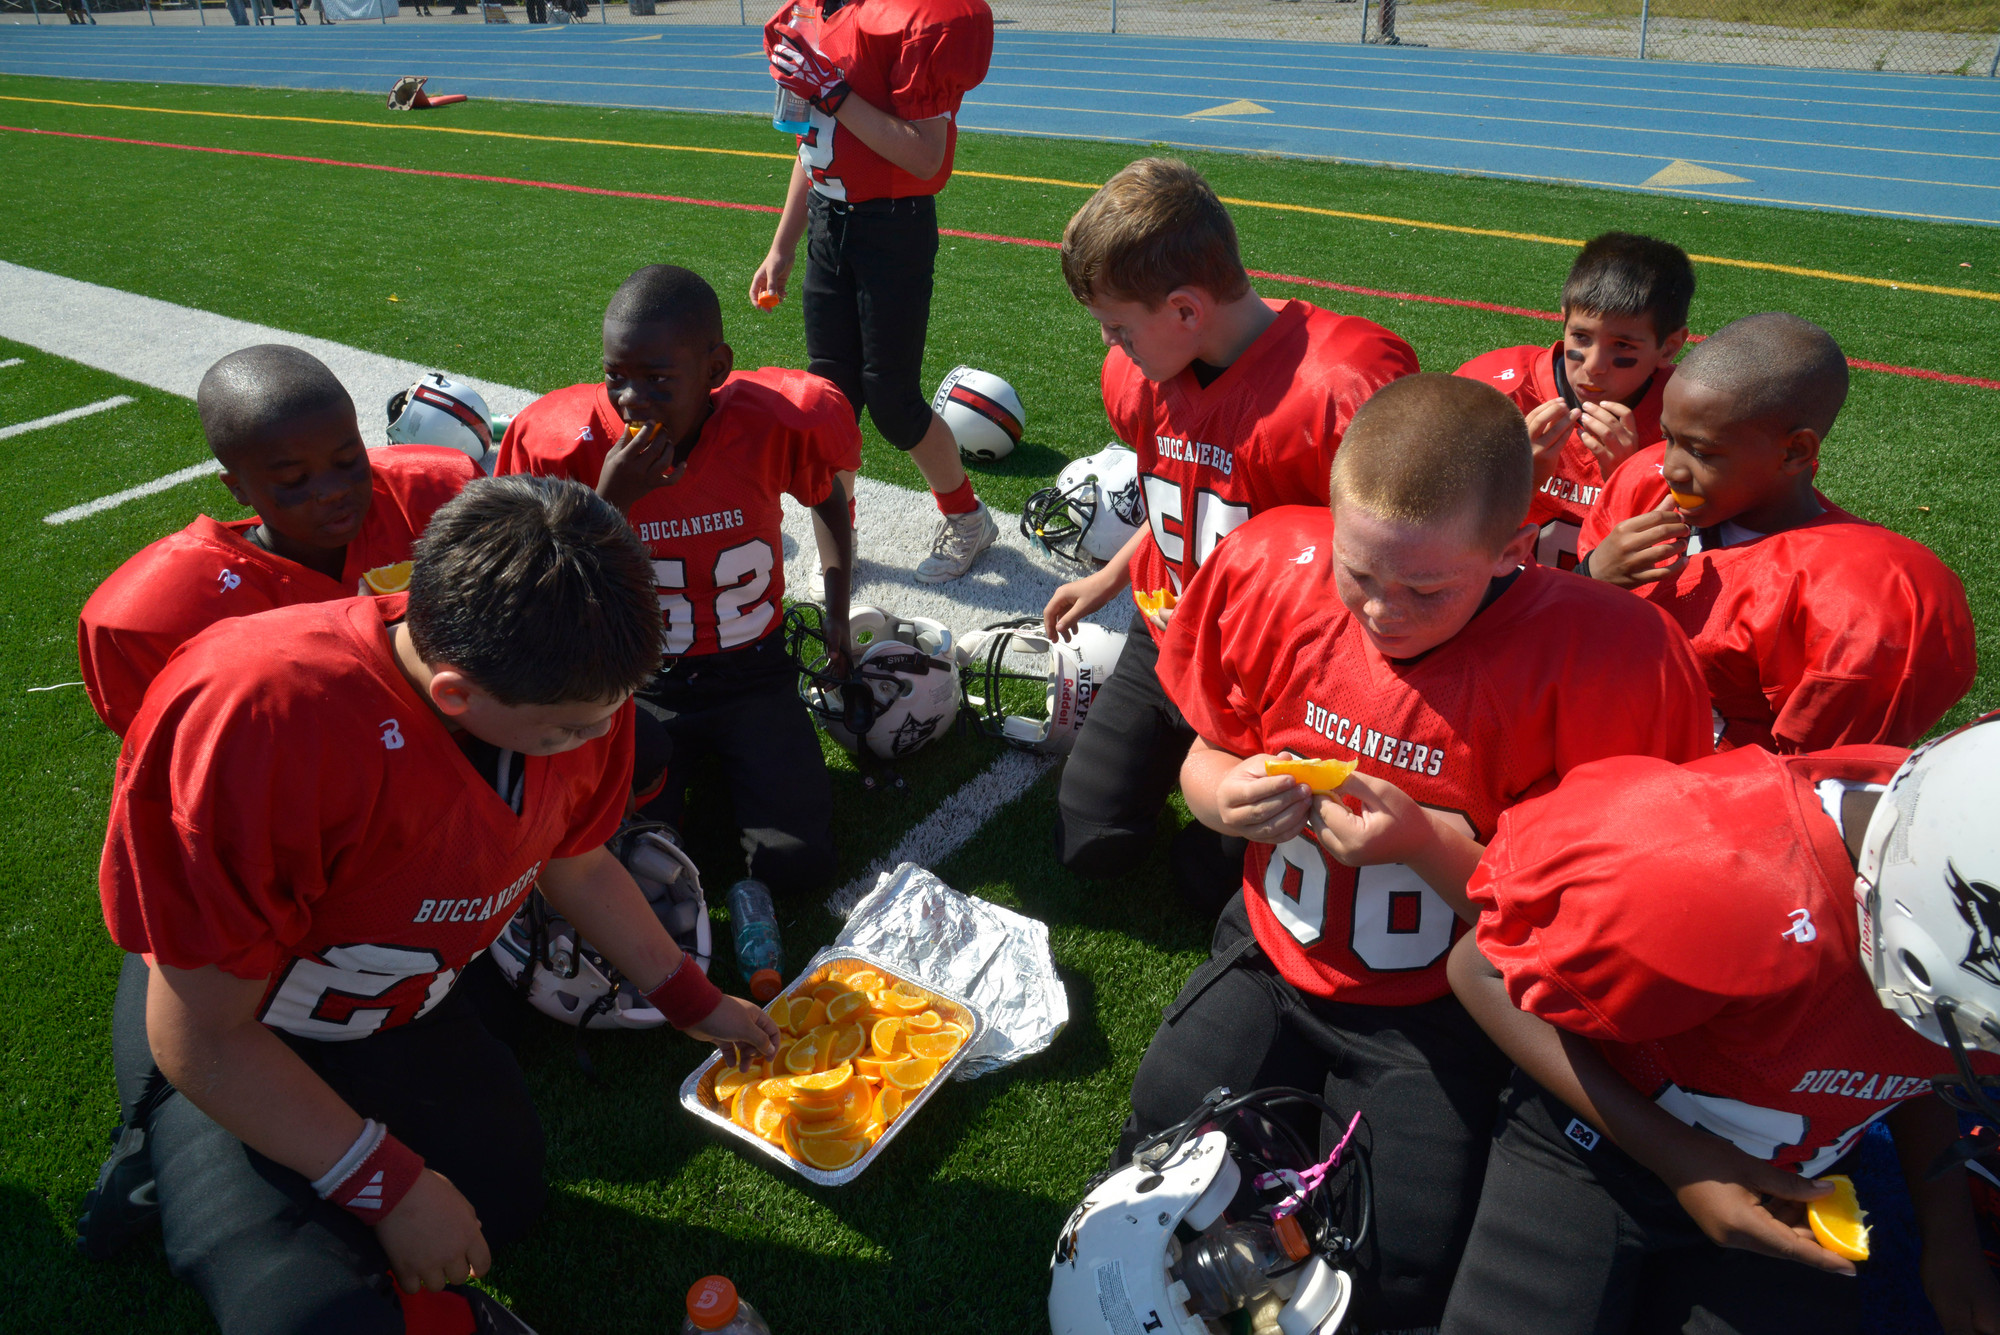 Buccaneer players took a game break to regain their energy by snacking on orange slices.